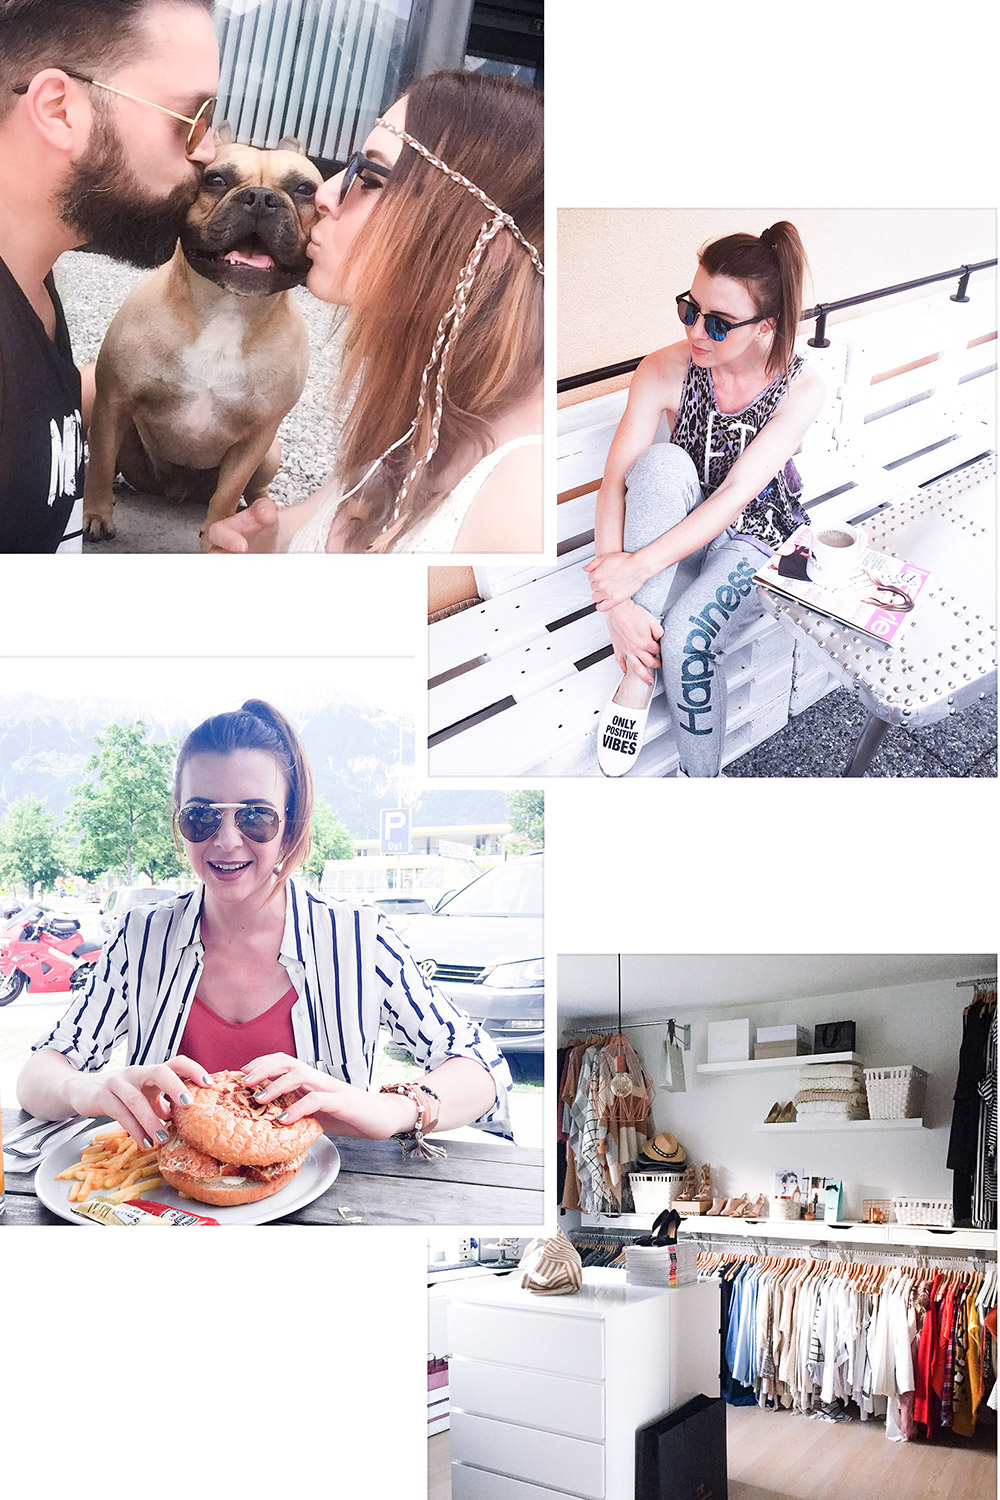 who is mocca, modeblog, tirol, innsbruck, tirolblog, instagram review, frenchie, husky, wardrobe, closet, fitness, poledance, burger coffee bar innsbruck, happynessbrand, hafelekar seegrube, schlafzimmer, bananenpancakes, vegan, what vegans eat, frauenzimmer boutique innsbruck, chloe lookalike bag drew, whoismocca.com